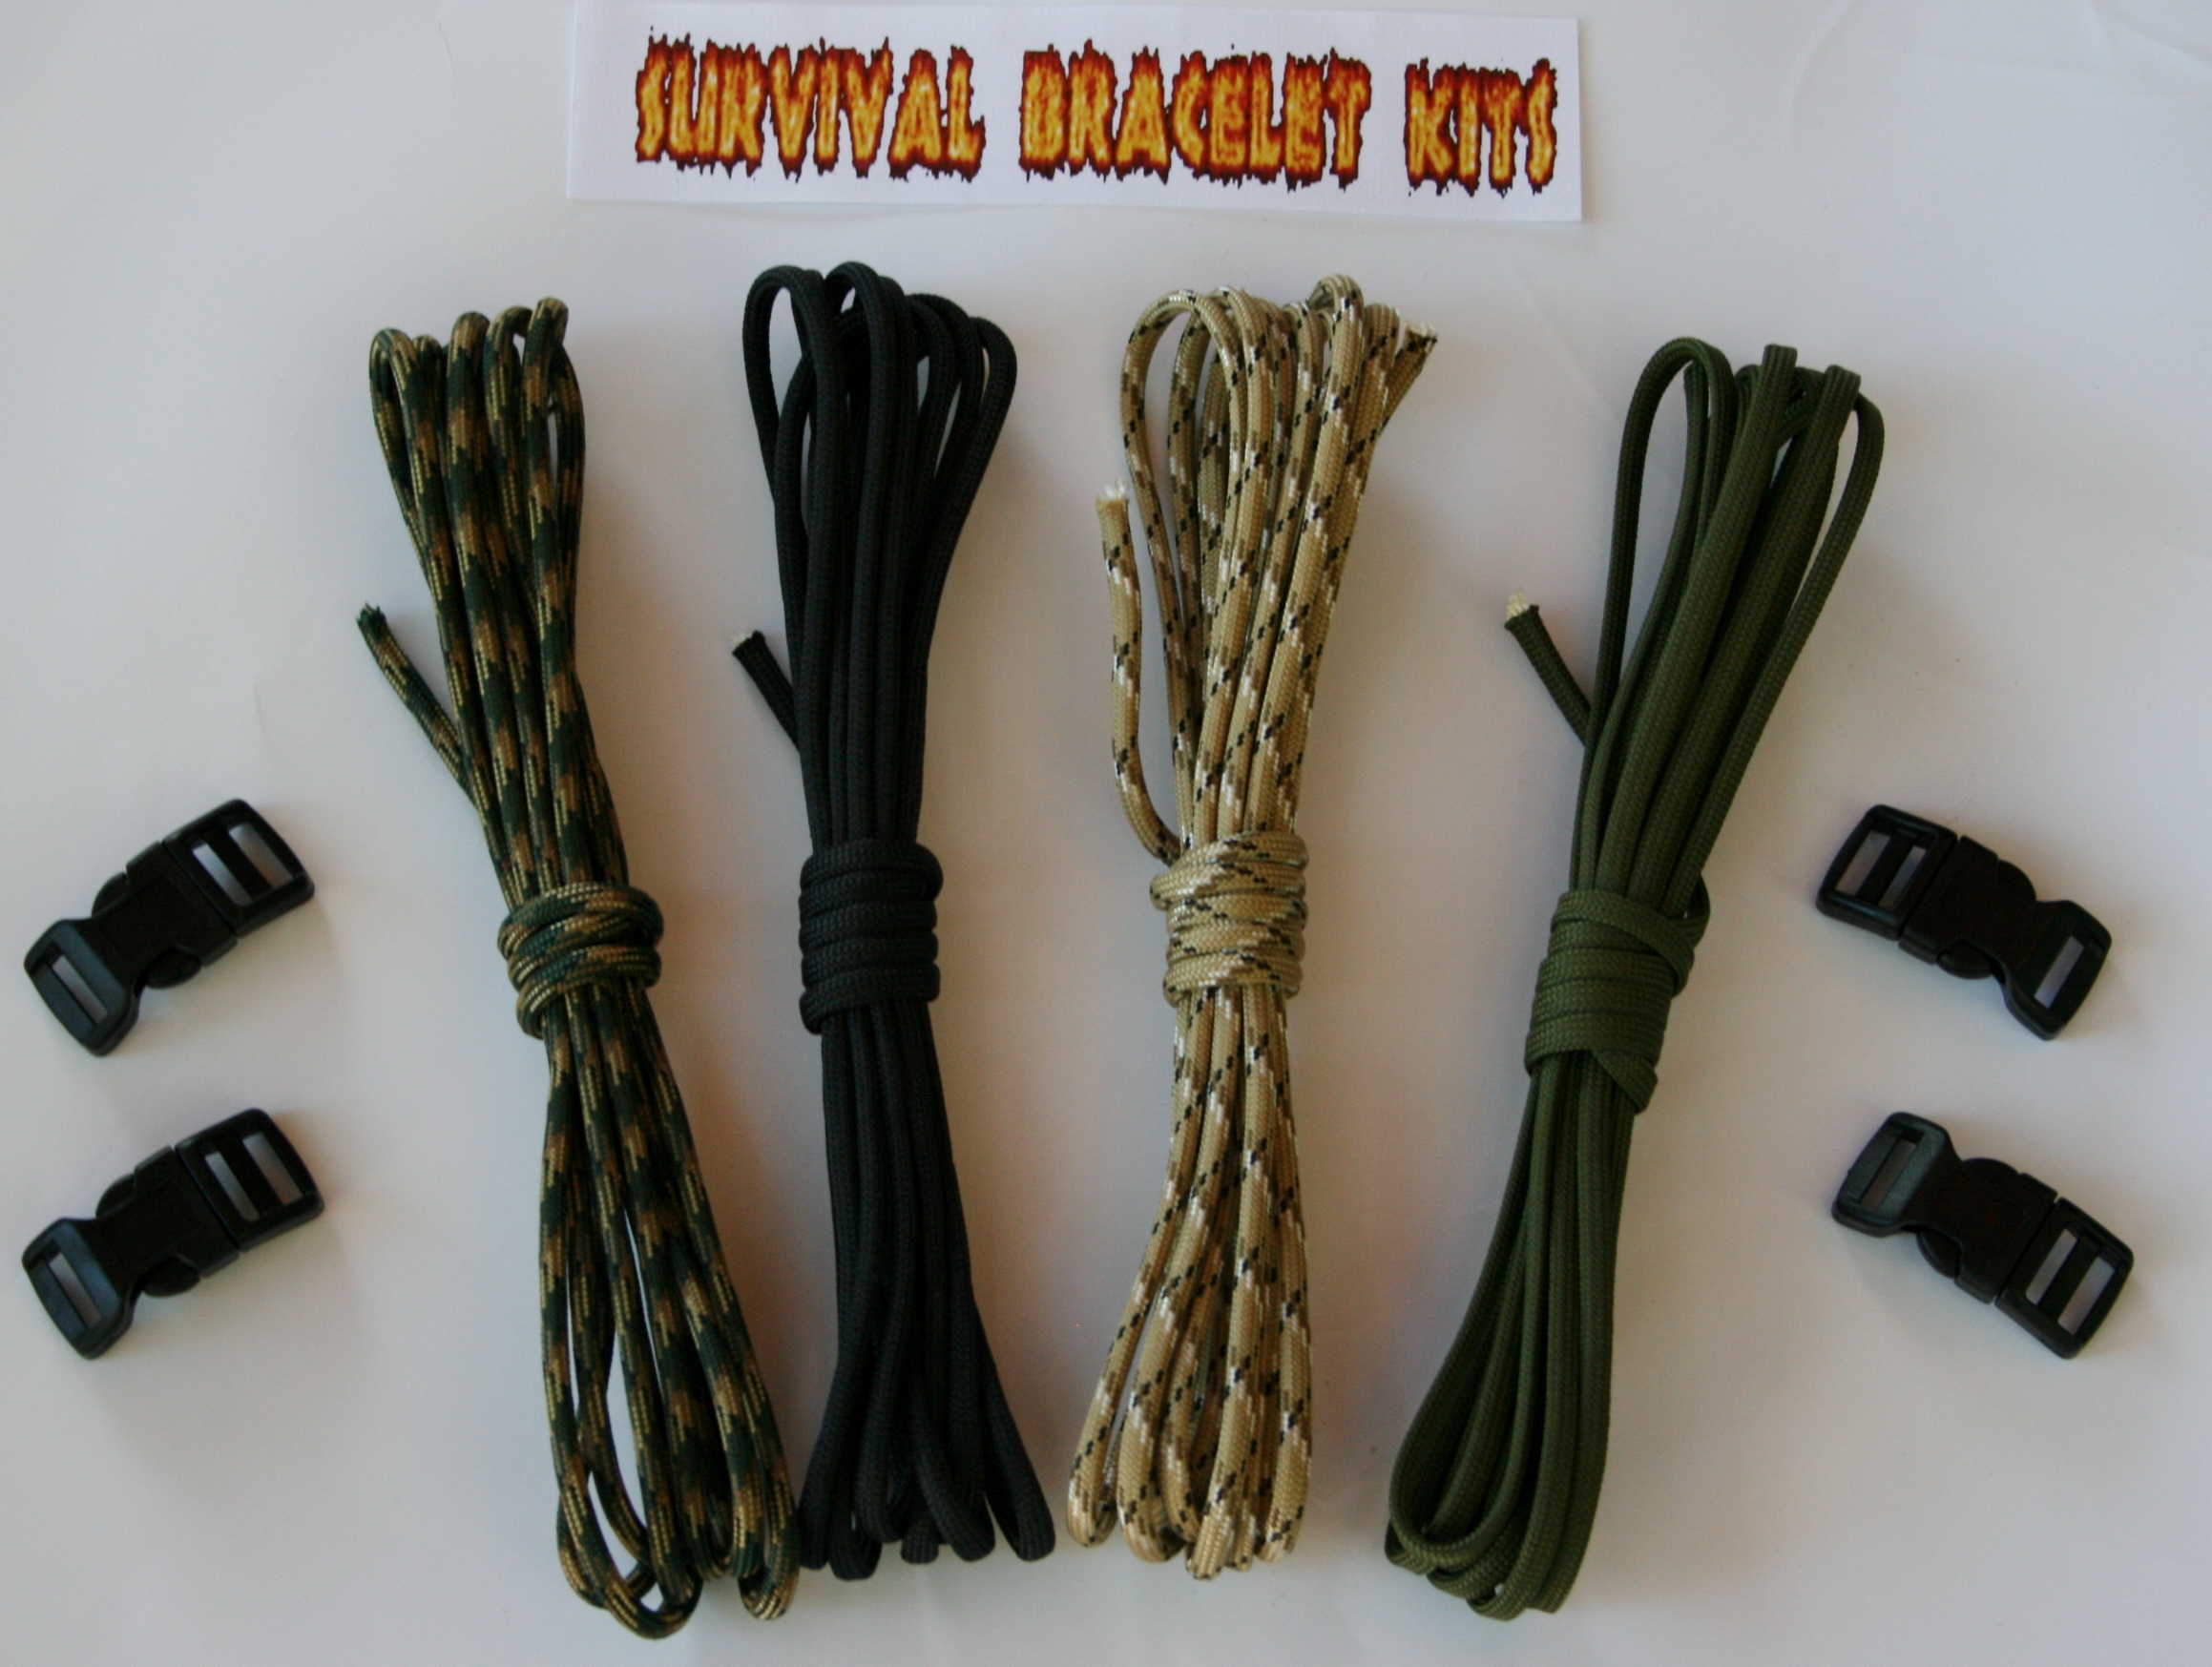 Recon 40 Survival Bracelet Kit